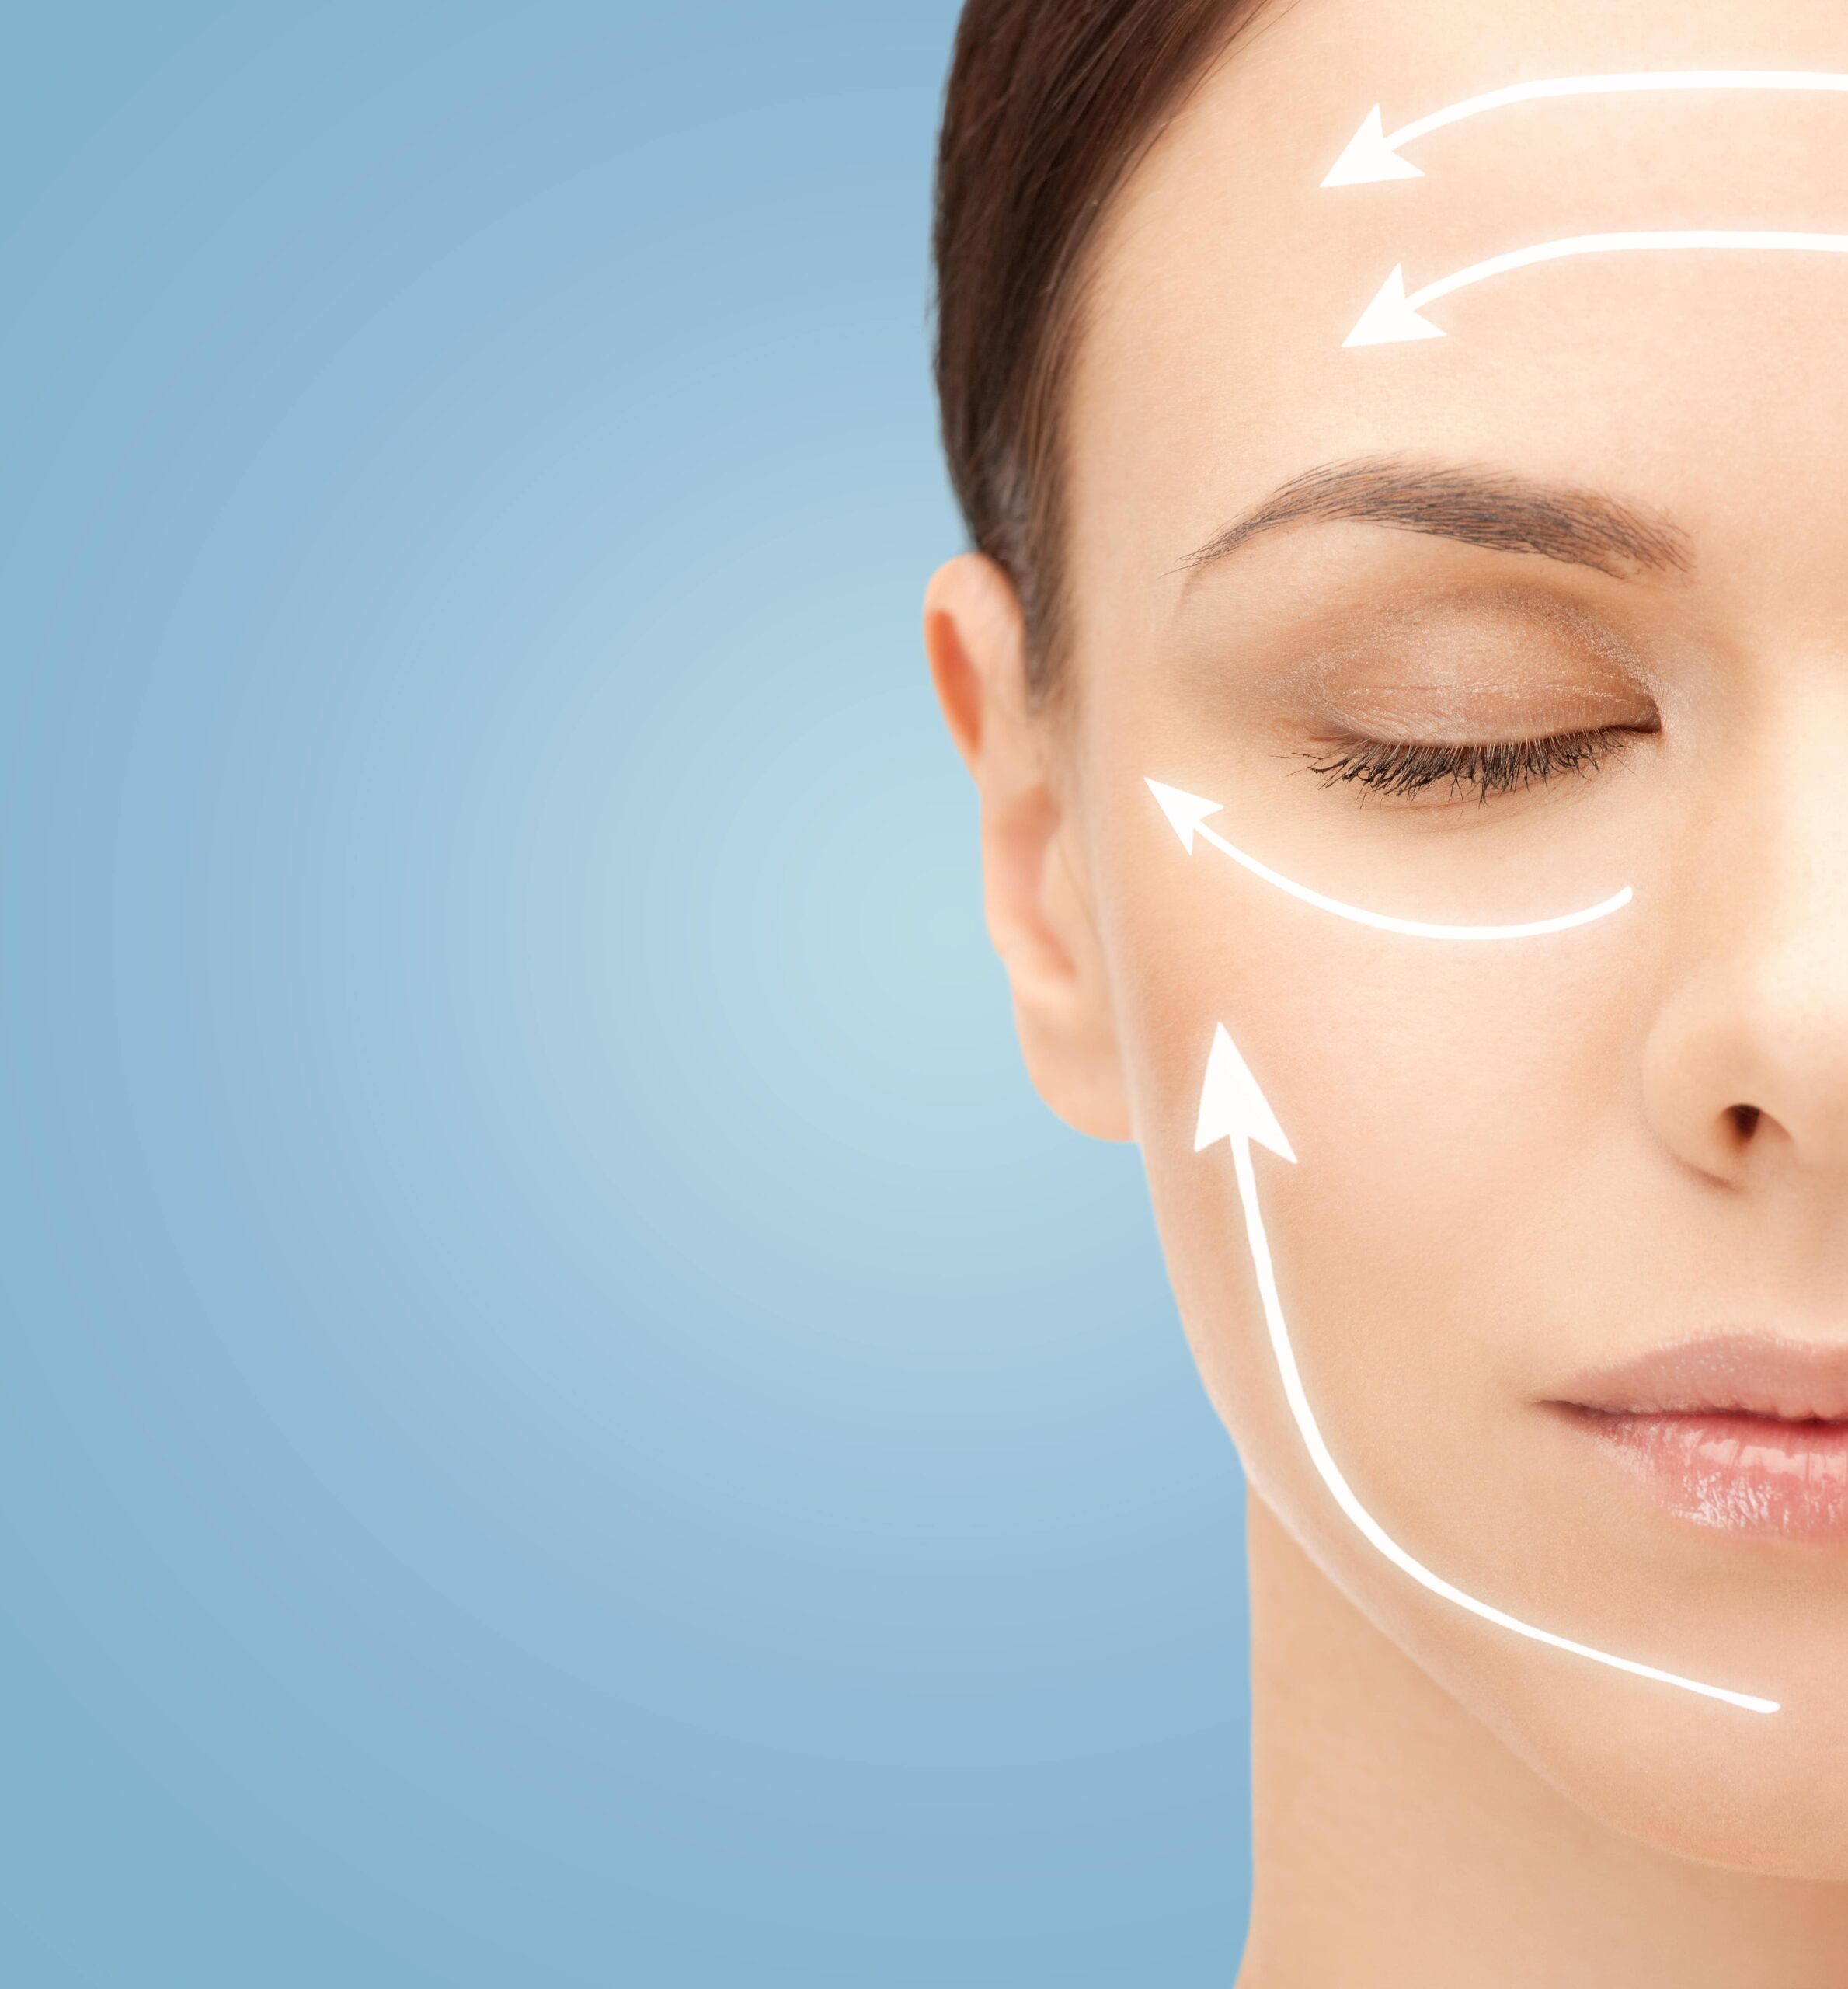 How To Sleep Comfortably After a Facelift Surgery